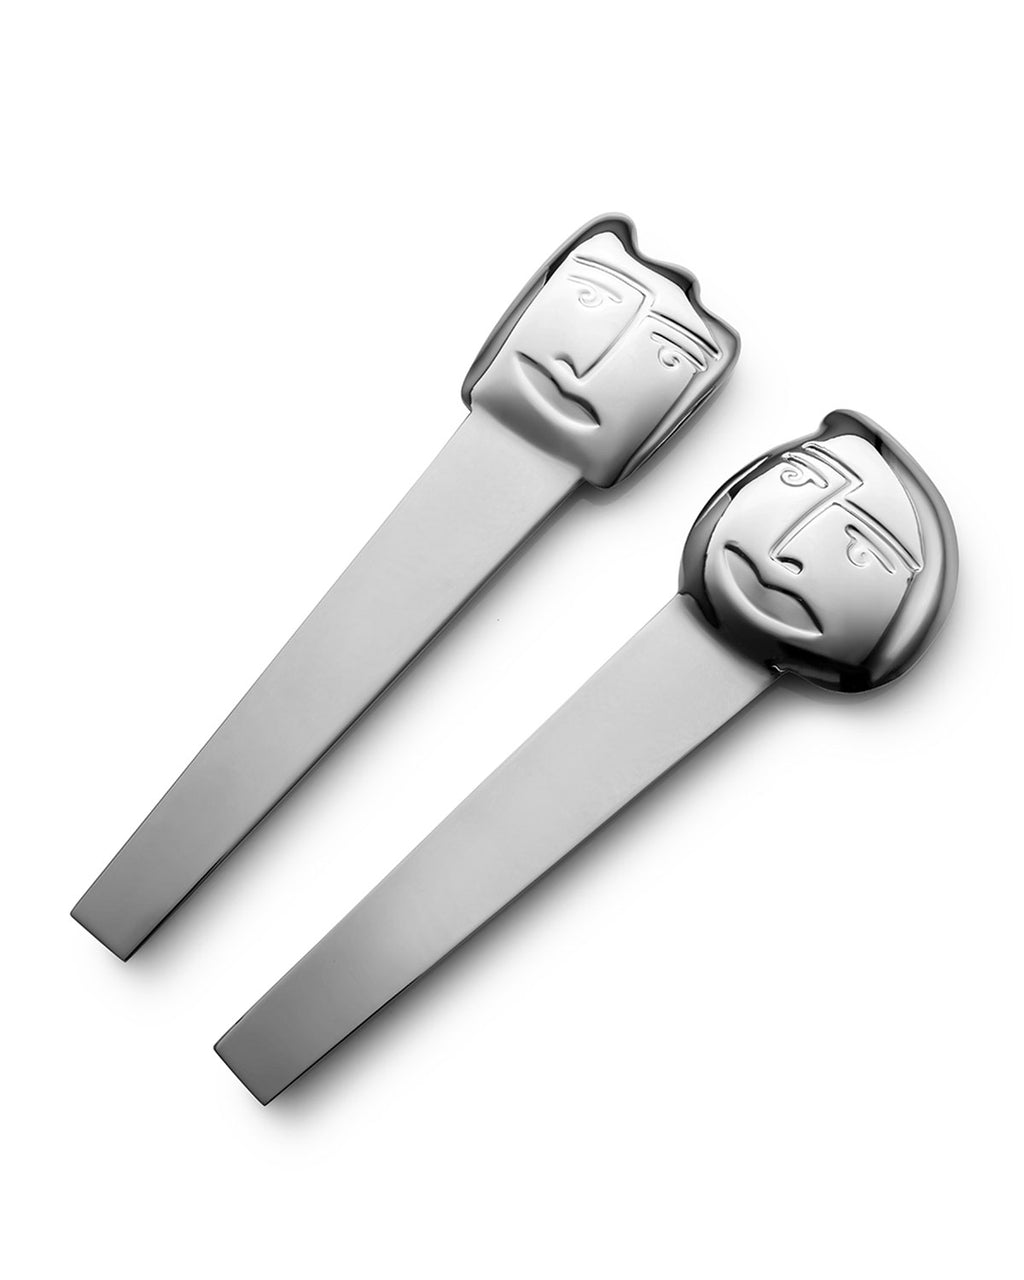 Carrol BoYes Face Off salad server